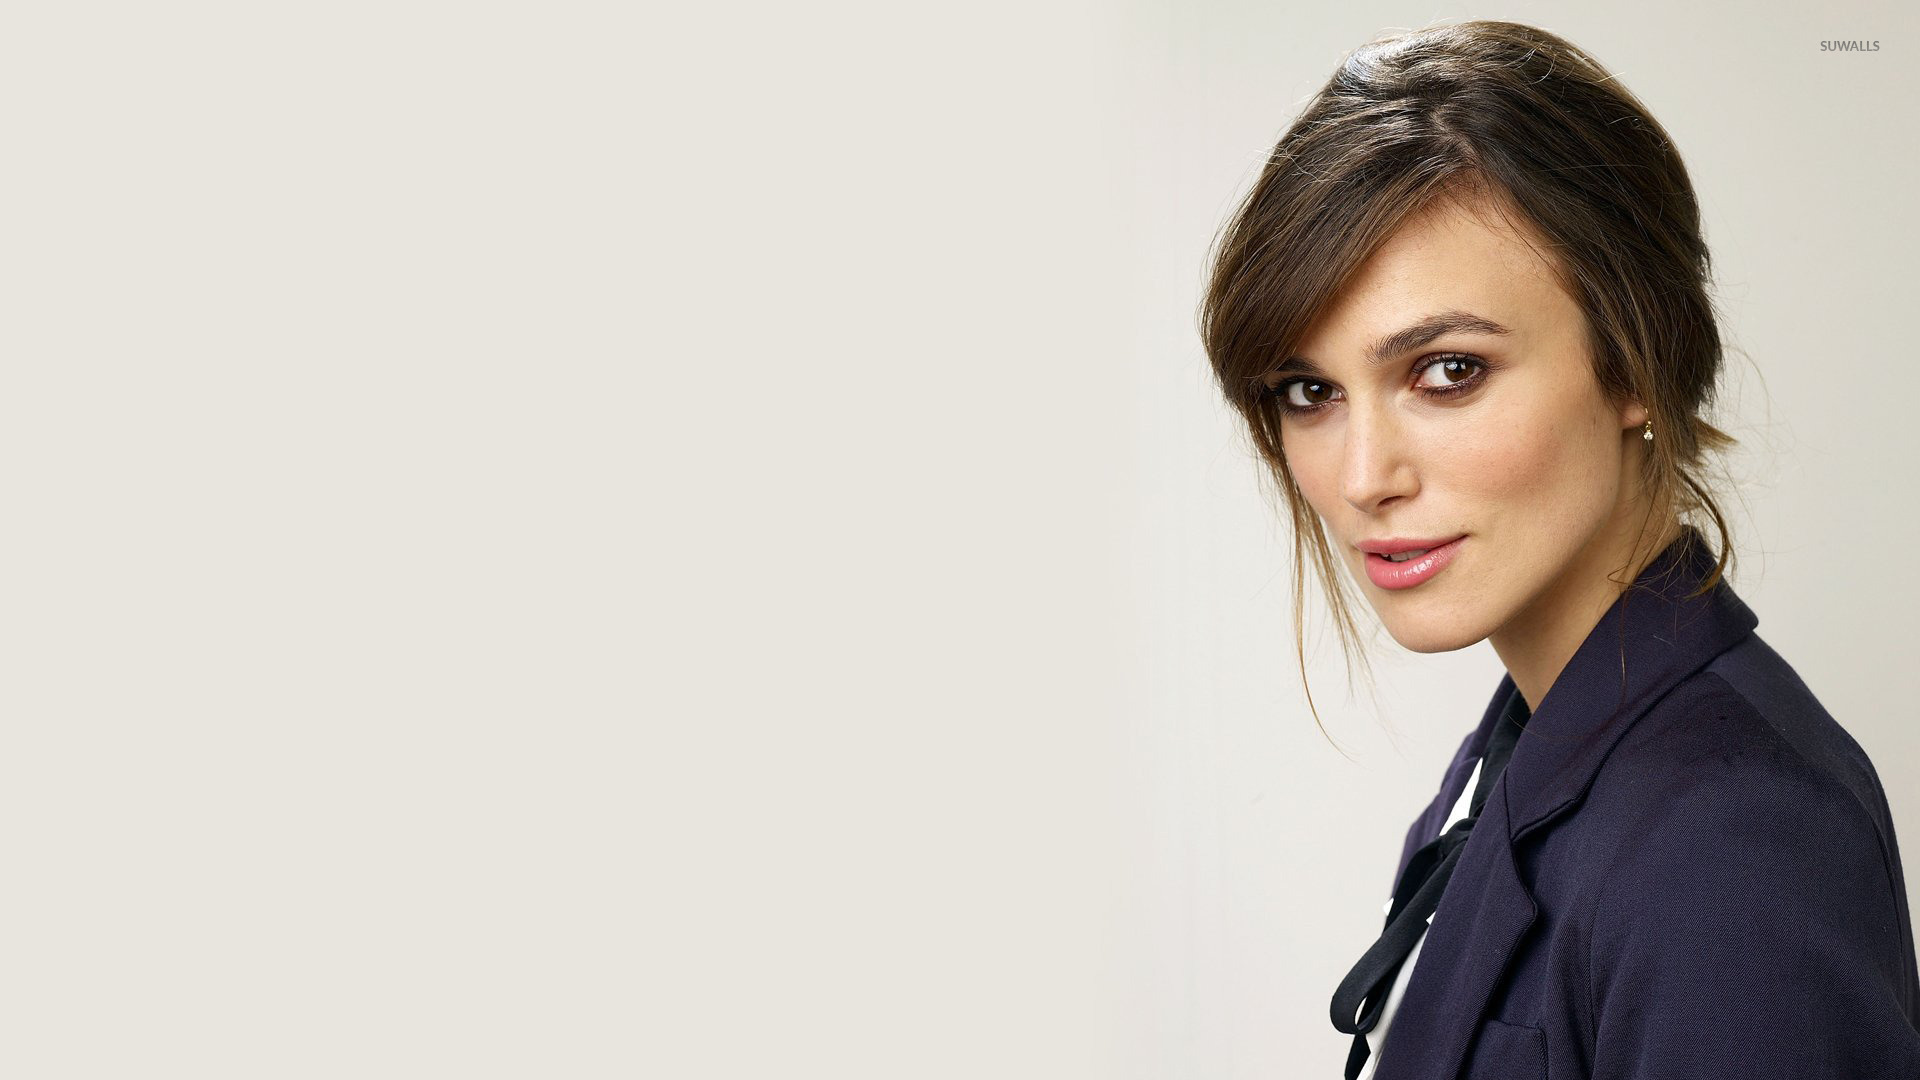 1920x1080 - Keira Knightley Wallpapers 27